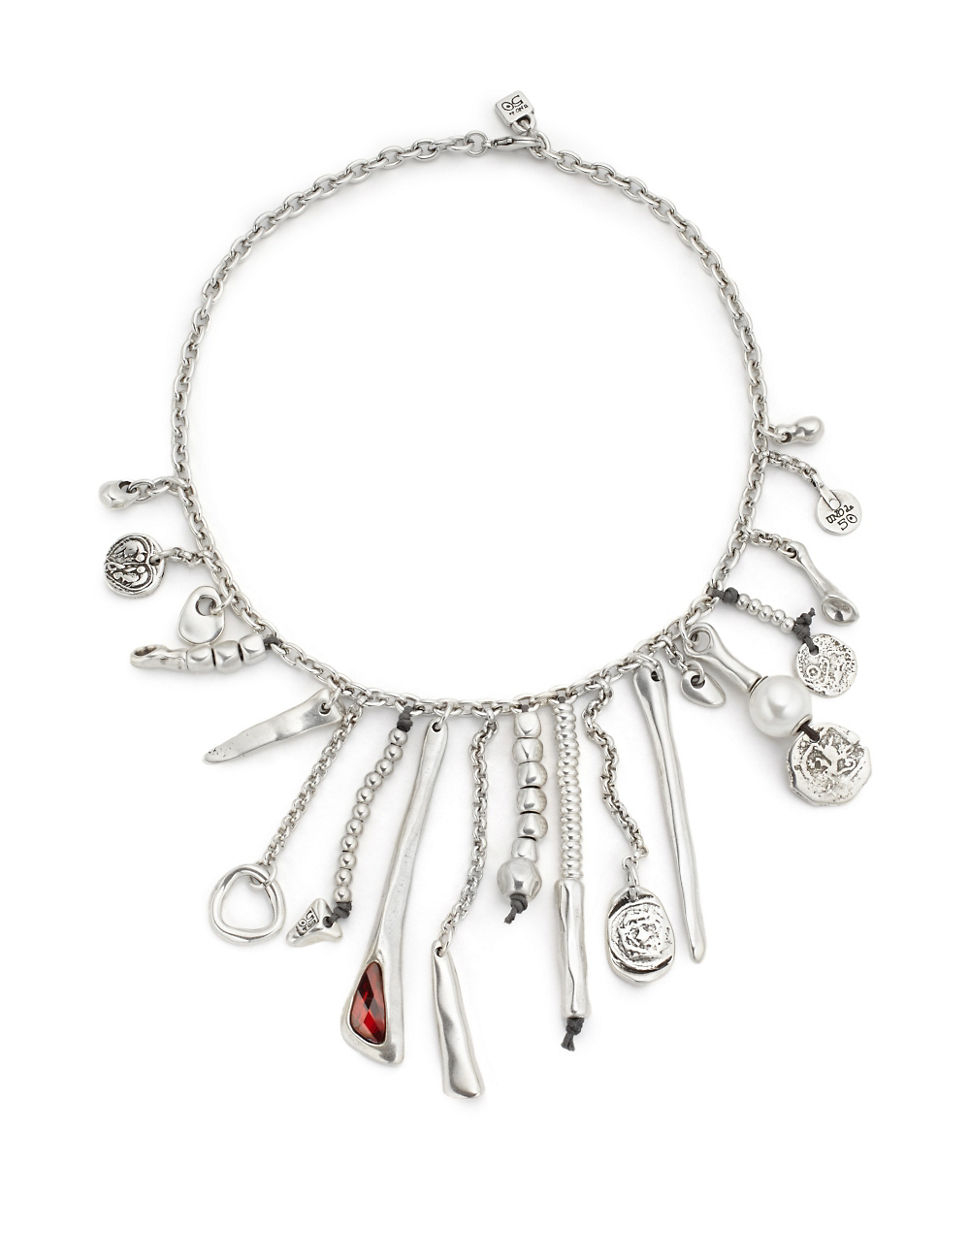 Lyst - Uno De 50 Swarovski Crystal Statement Necklace in Red for Men 5fe25ec1a4